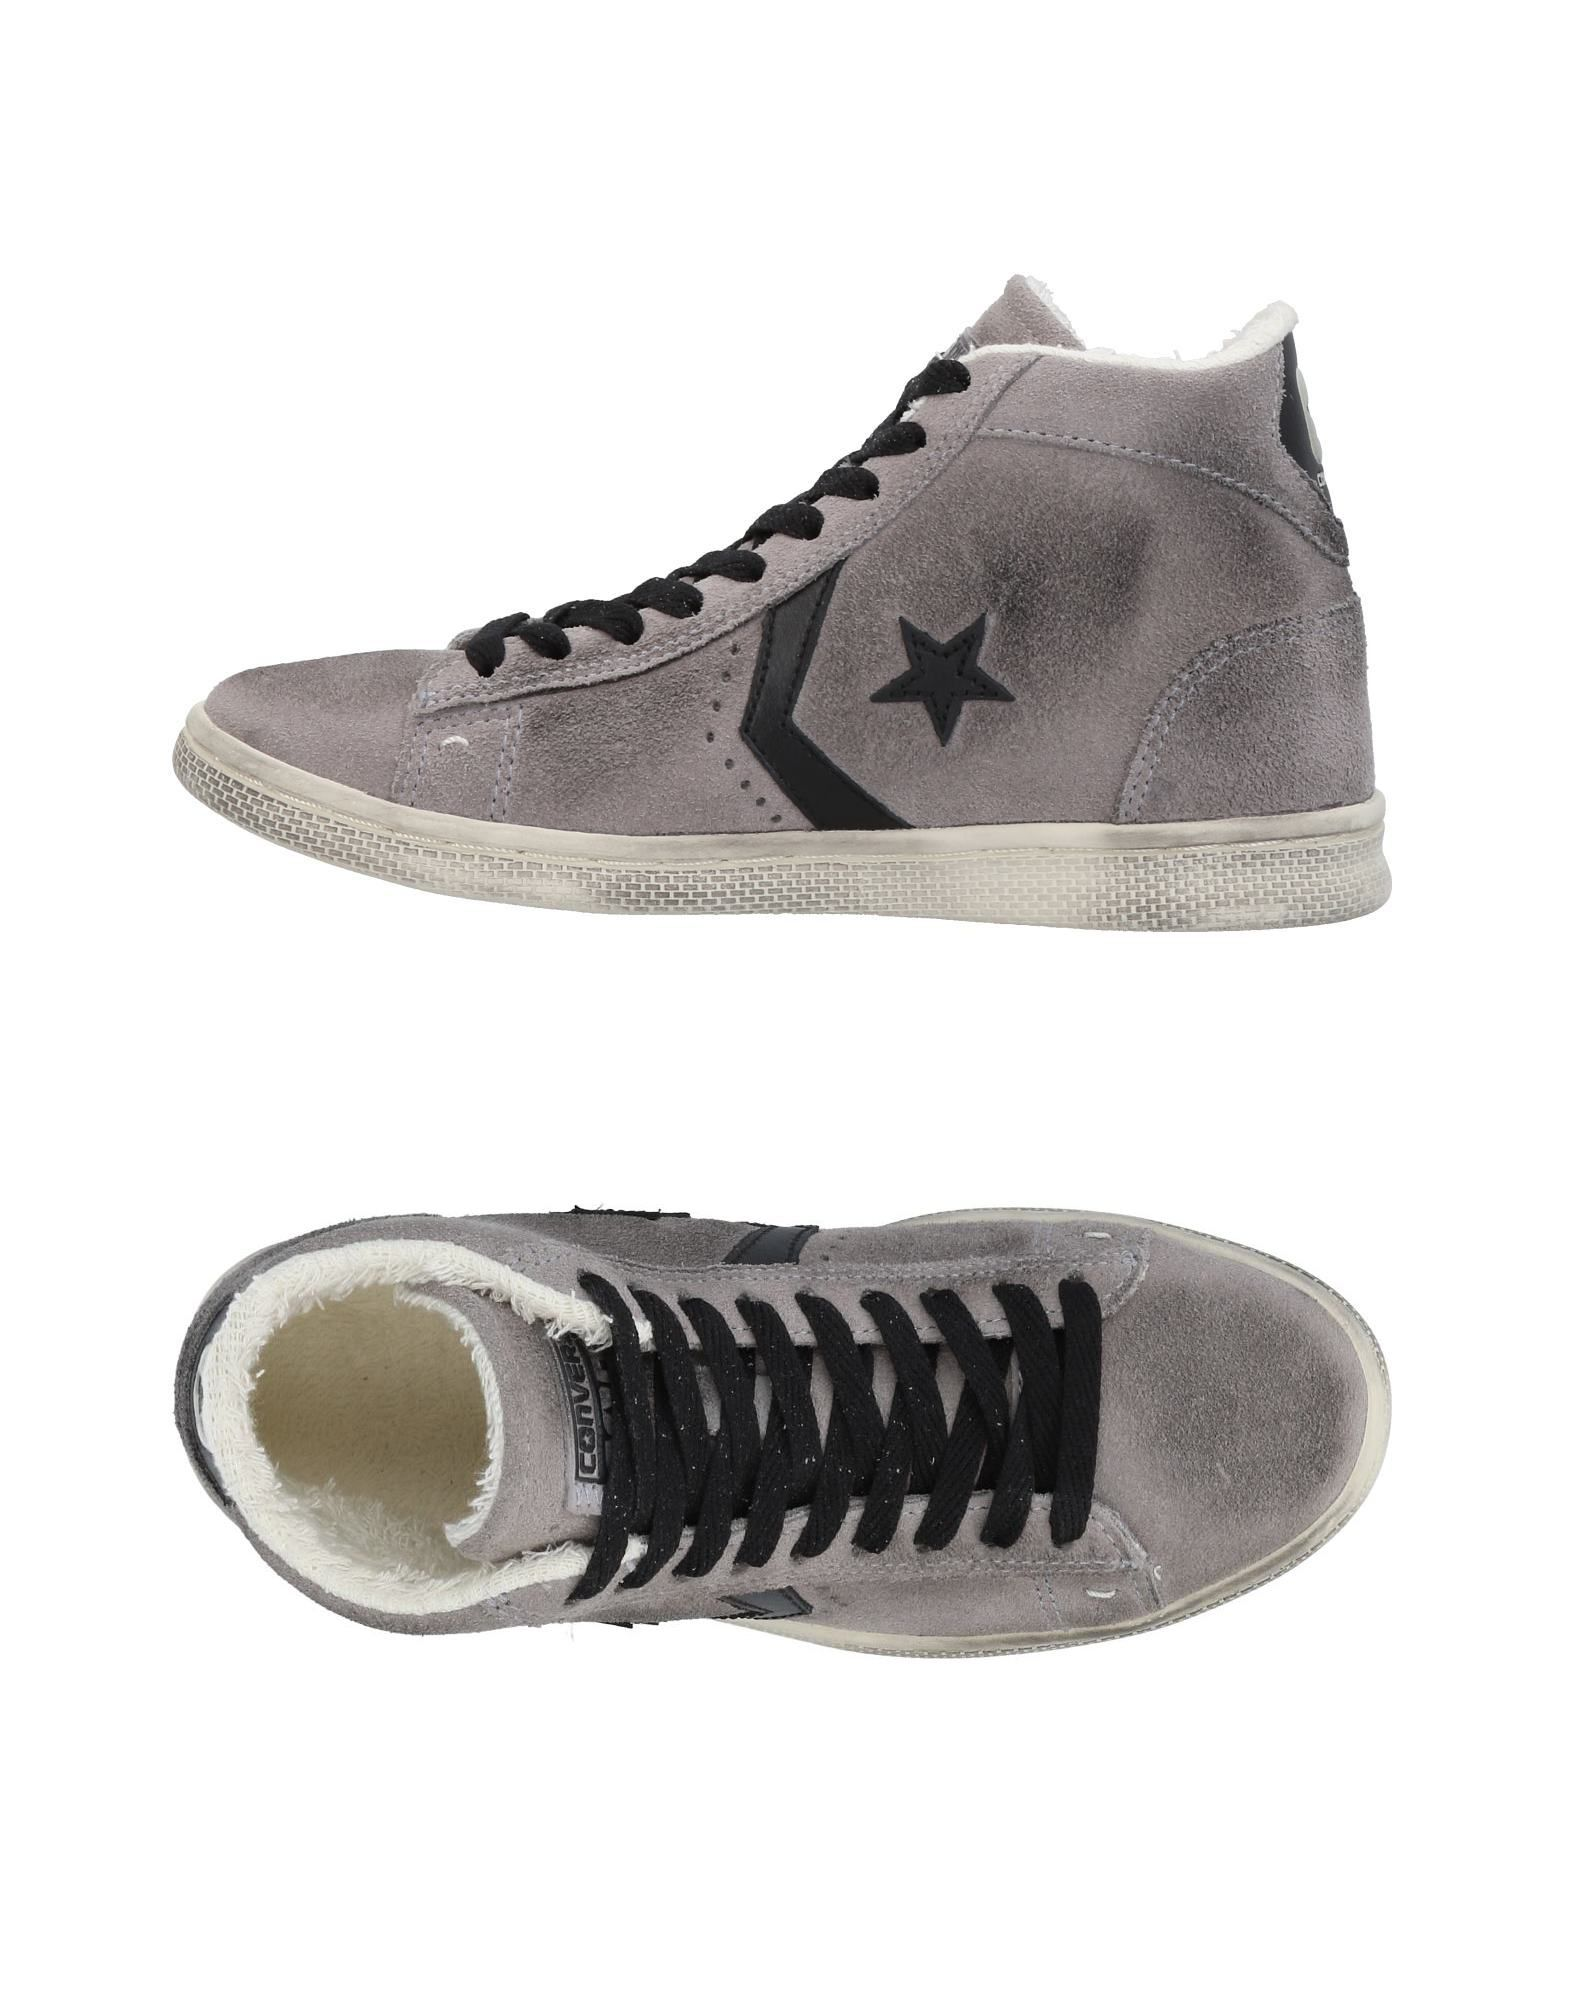 Sneakers Converse Cons Femme - Sneakers Converse Cons sur